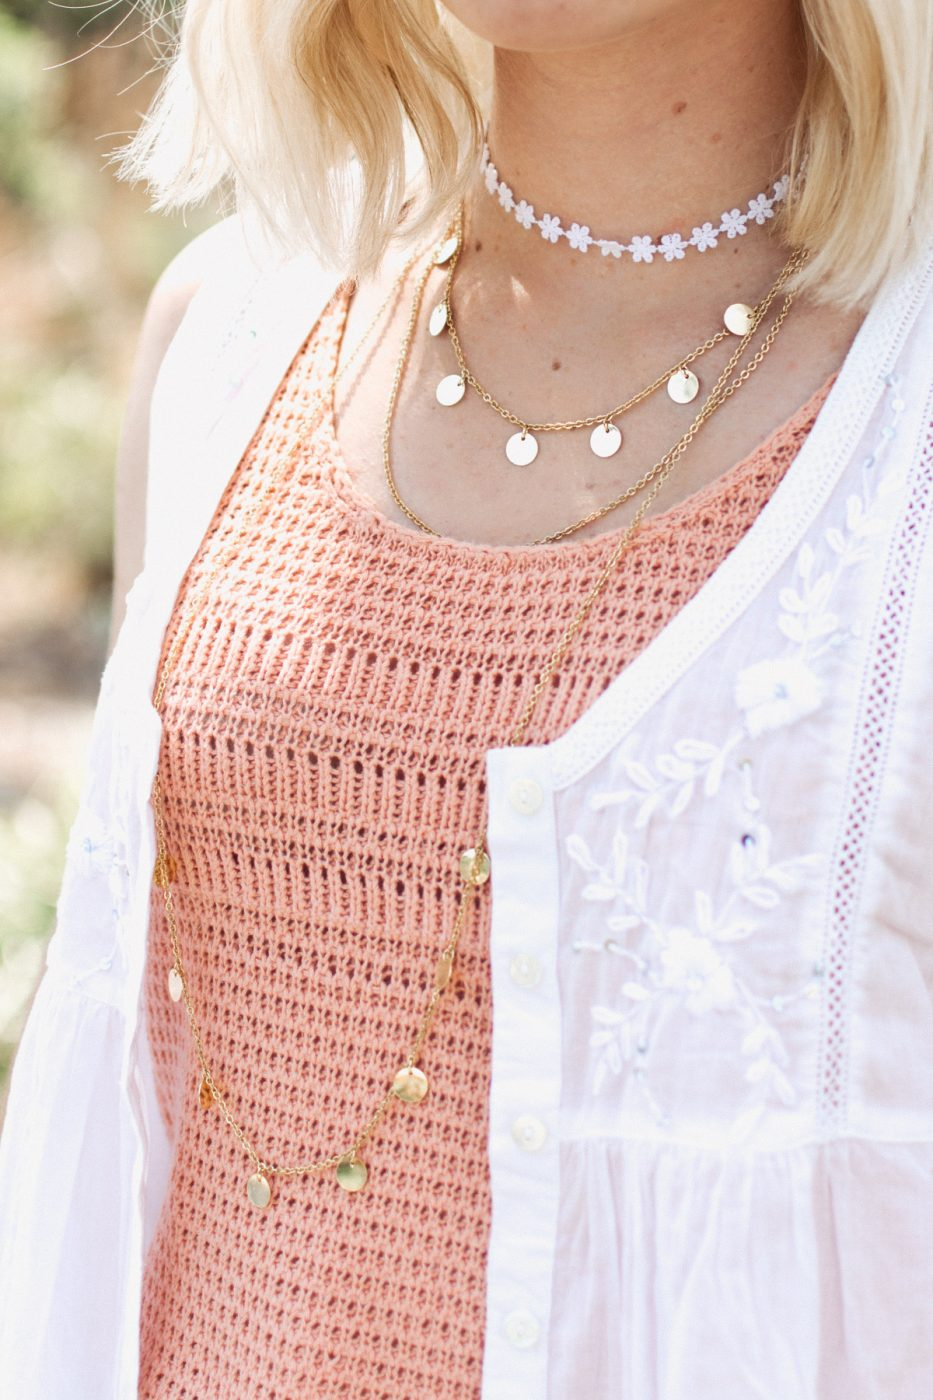 Boho layered necklaces for a festival fashion look by Jenny Bess of Sweet Teal